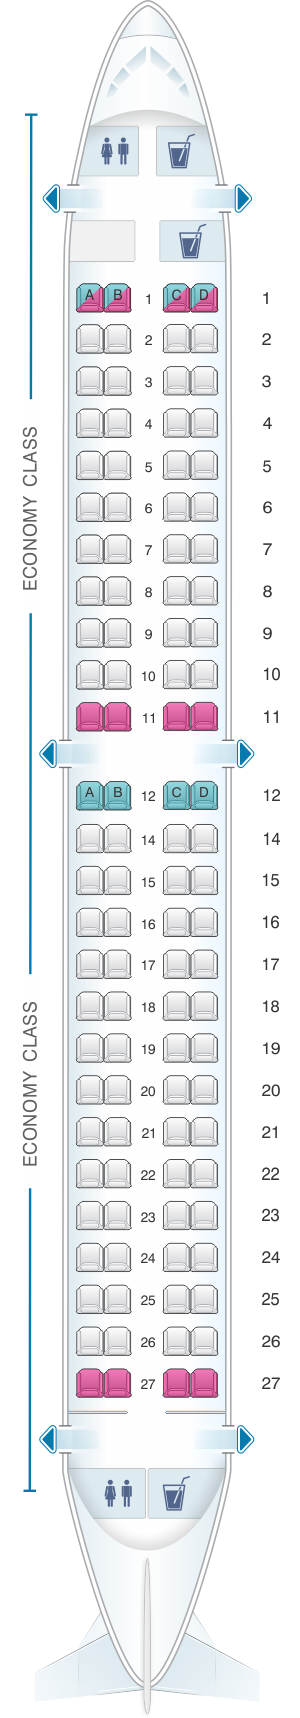 Seat map for China Airlines Embraer 190